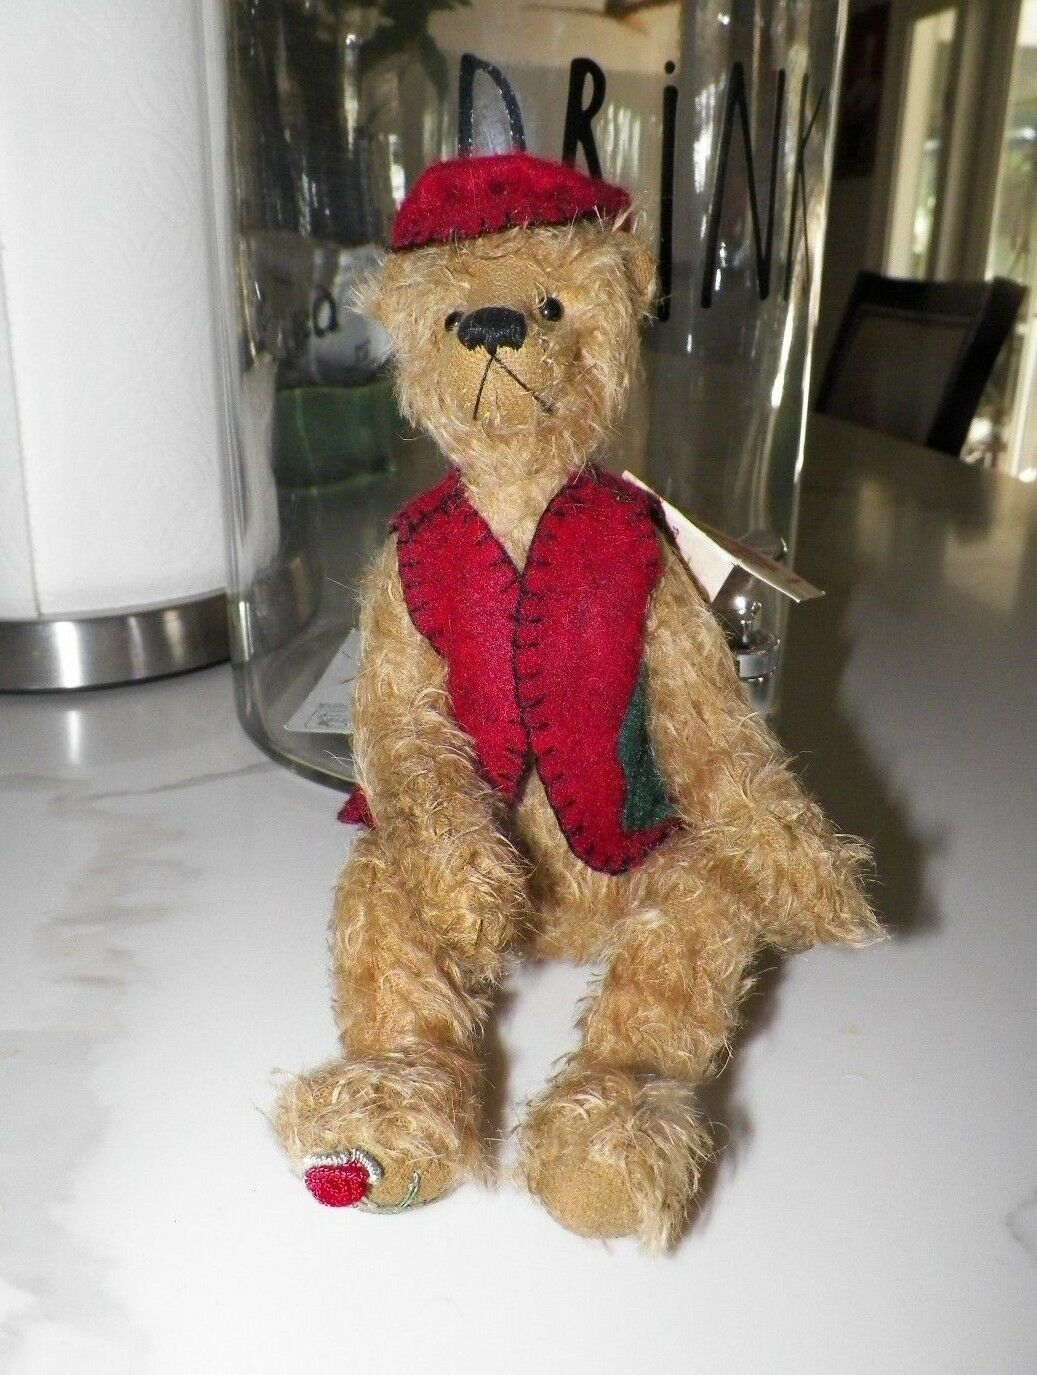 Jahr NITA SCHWENN MOHAIR BEAR ATTIC TREASURES BENTLEY 10  CLEAN WITH TAG